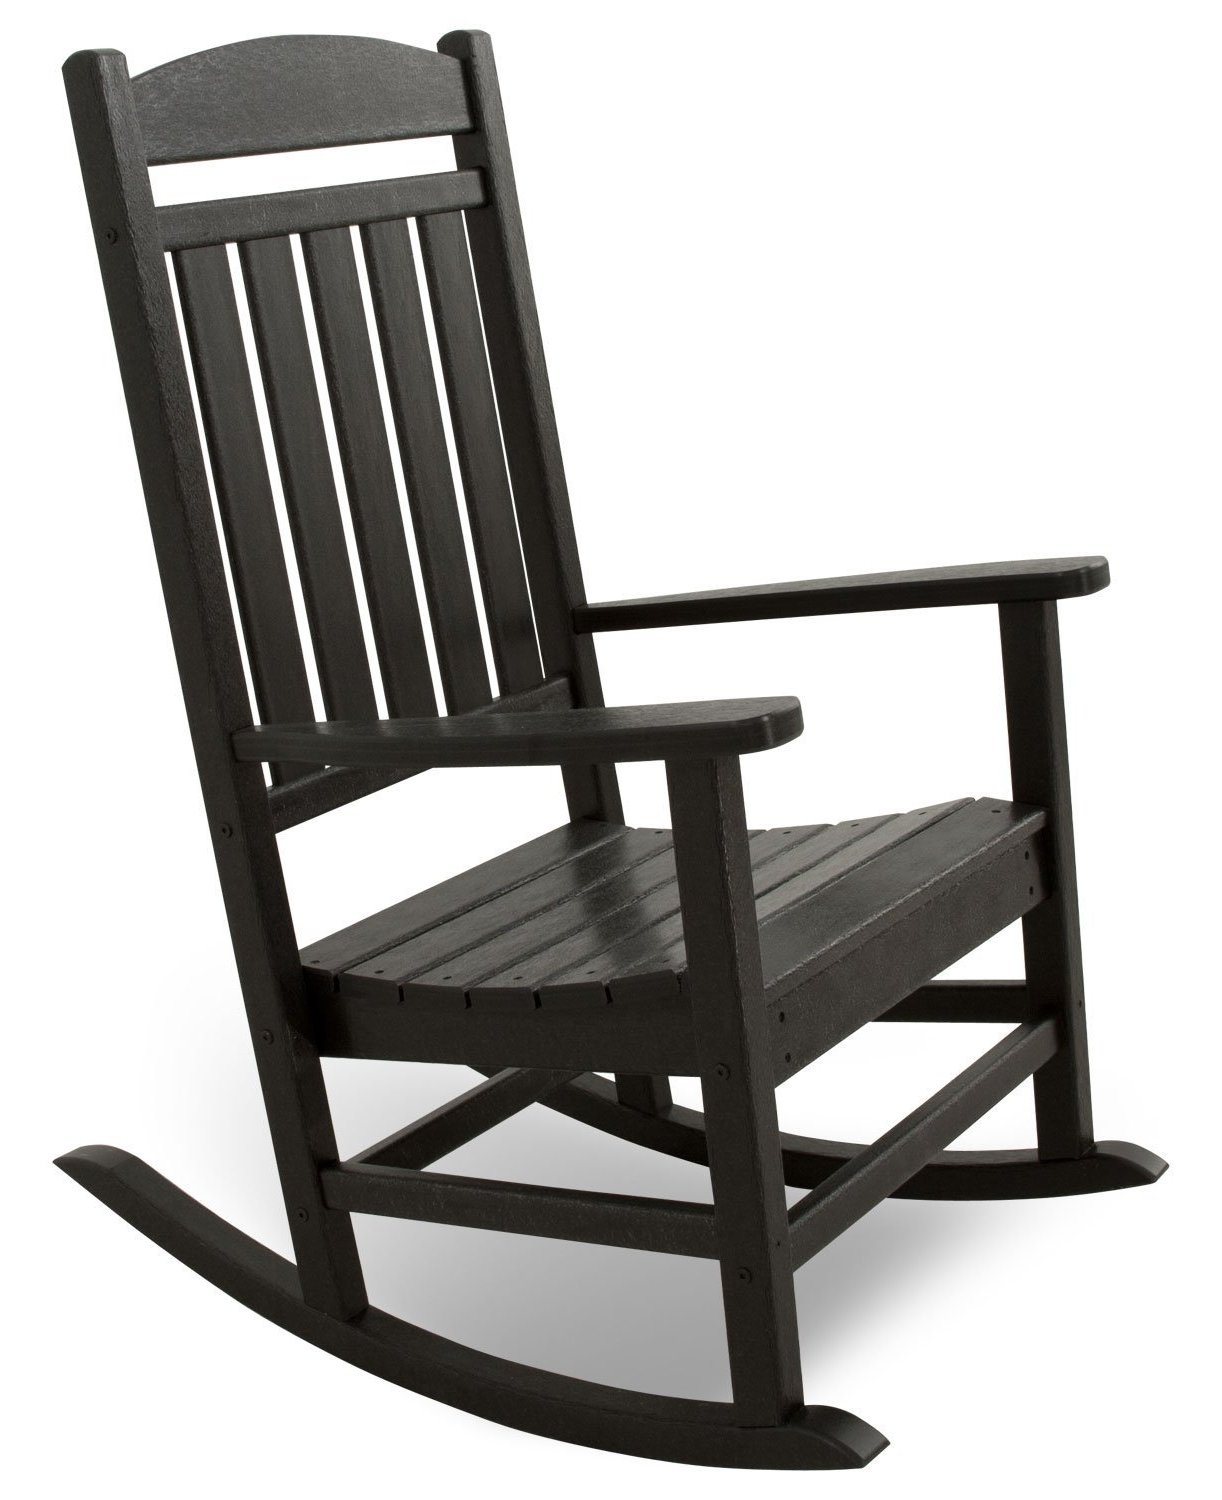 Widely Used Vintage Outdoor Rocking Chairs With Chair (View 14 of 15)